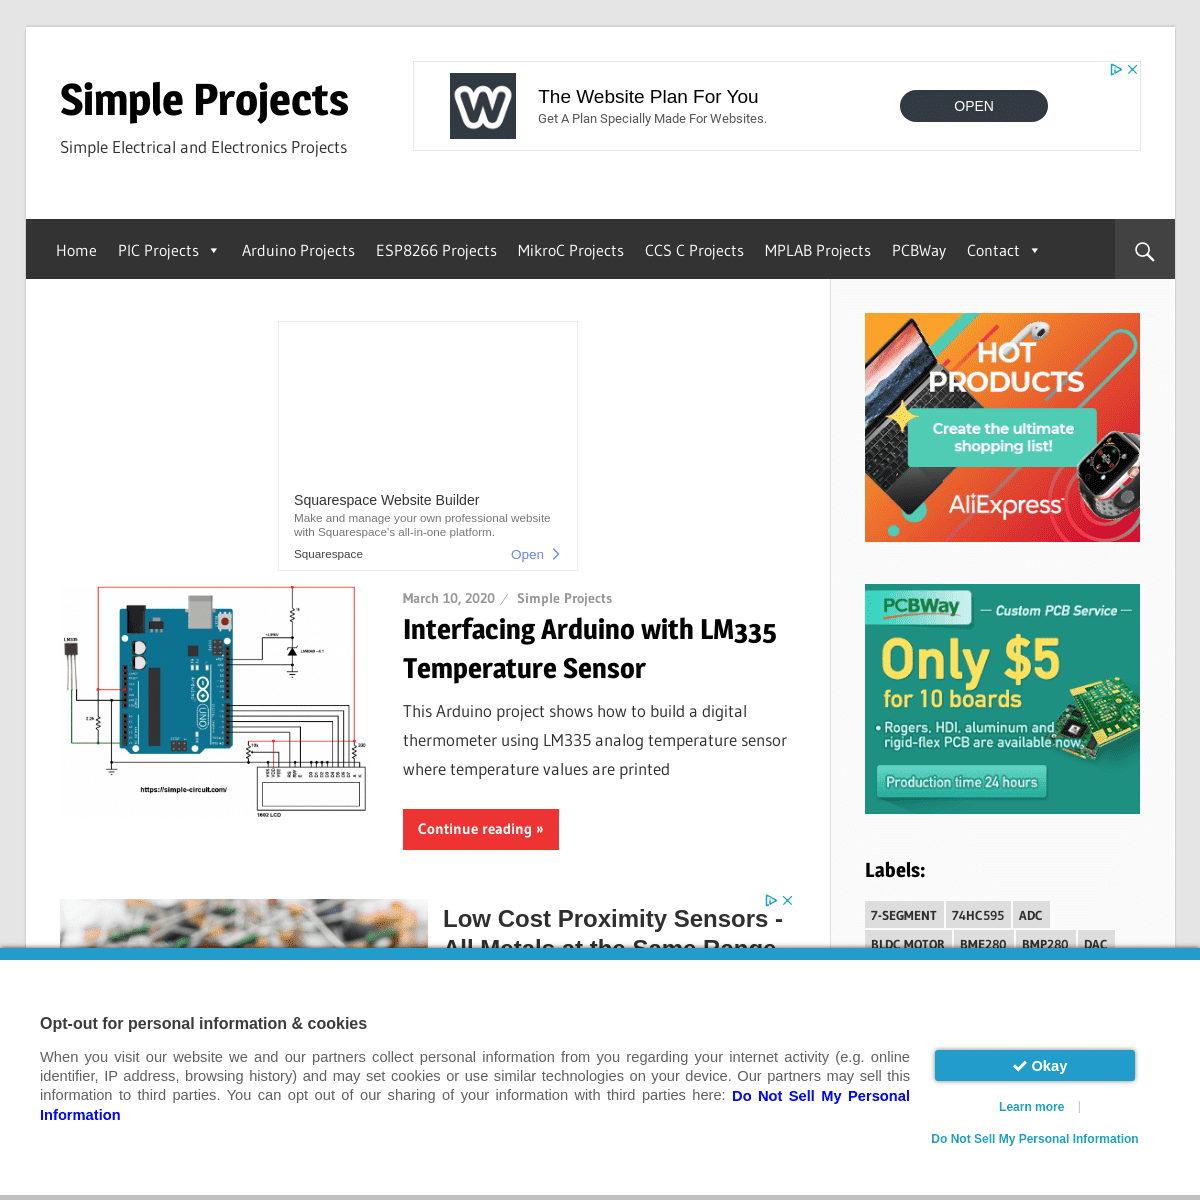 Simple Projects - Simple Electrical and Electronics Projects